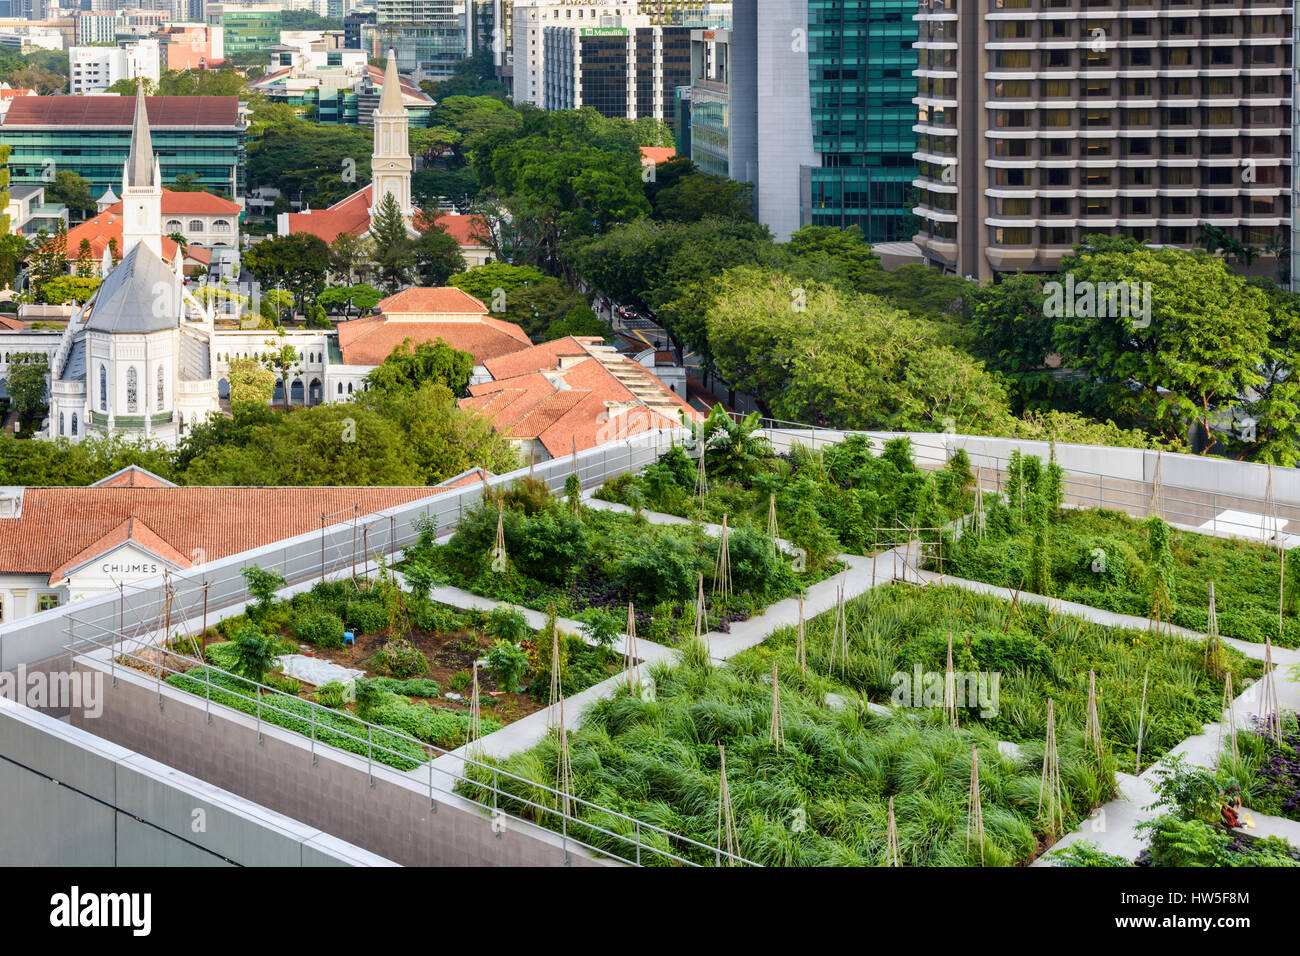 Roof top garden on the Raffles City Shopping Centre, Singapore - Stock Image